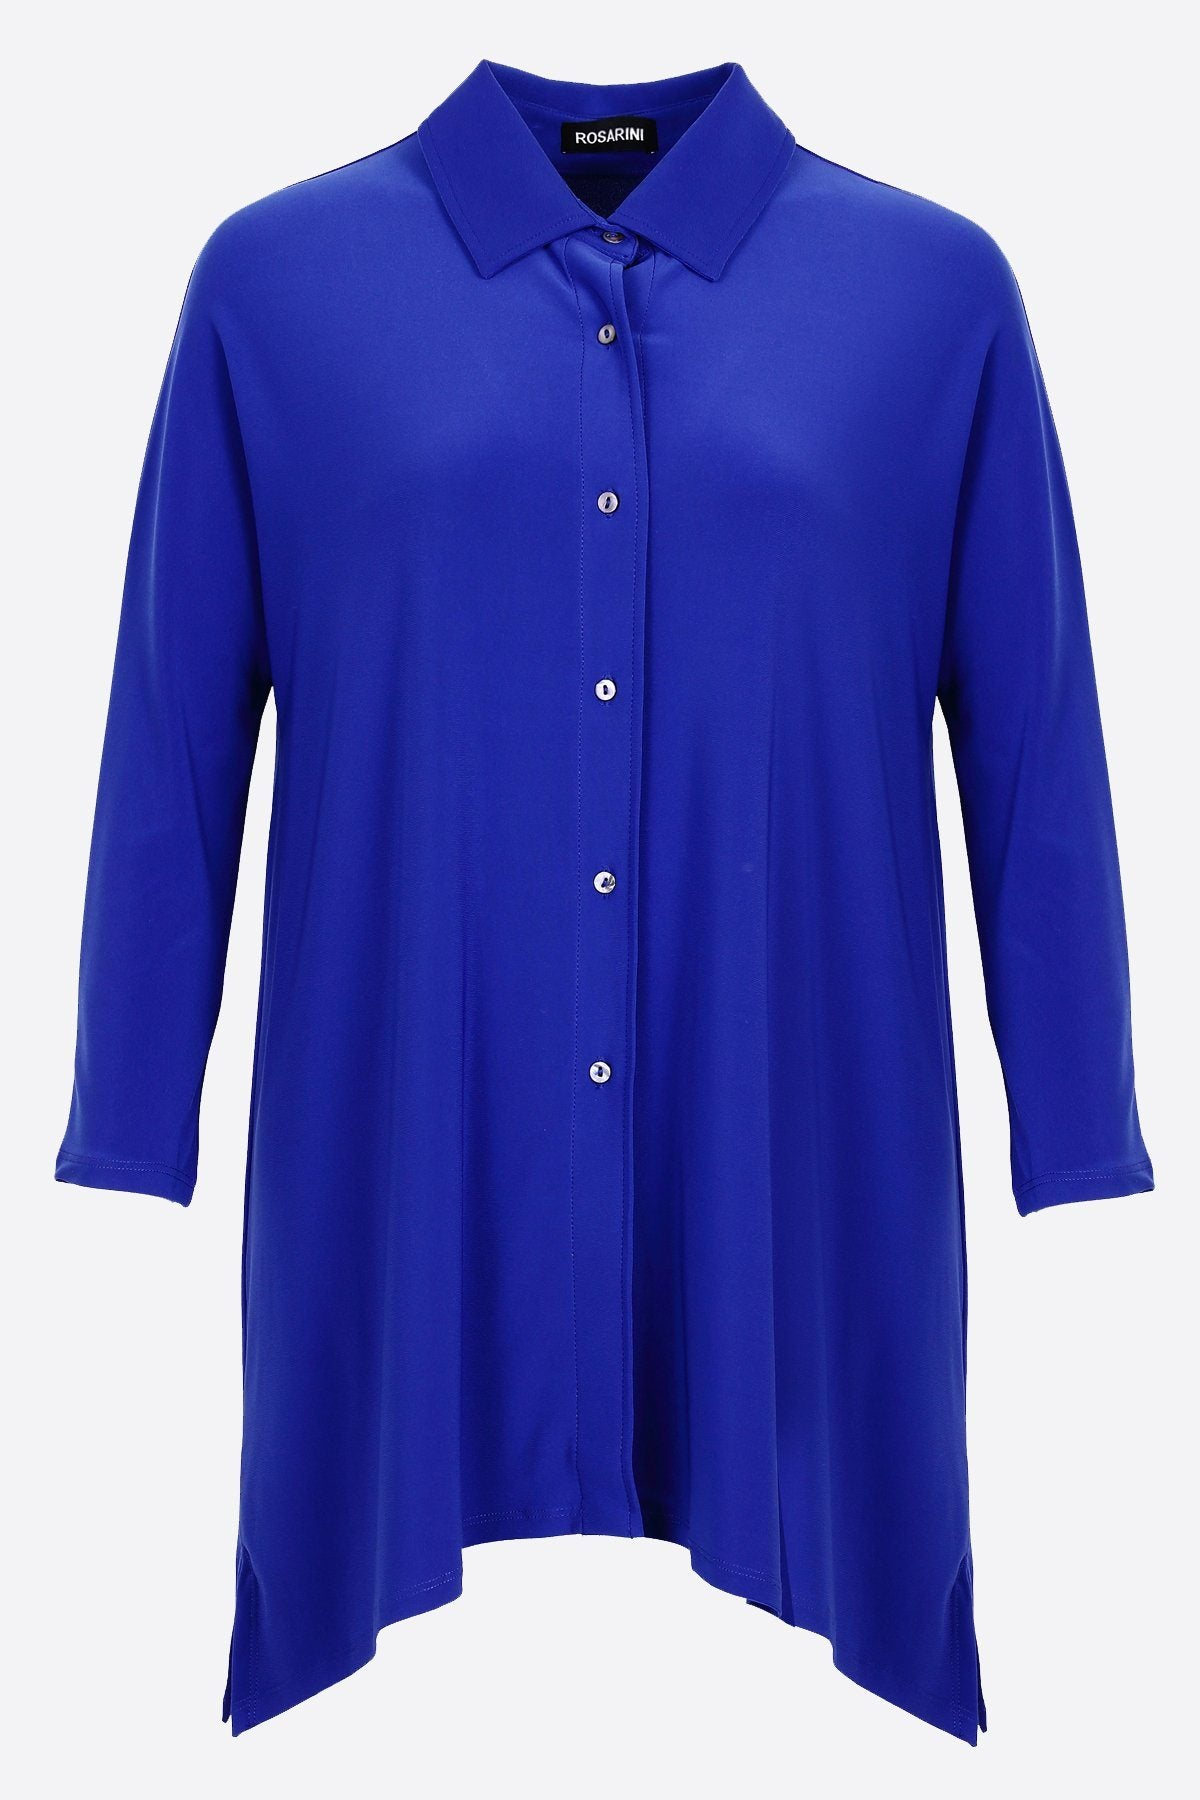 Button Shirt with Curved Hem Blue